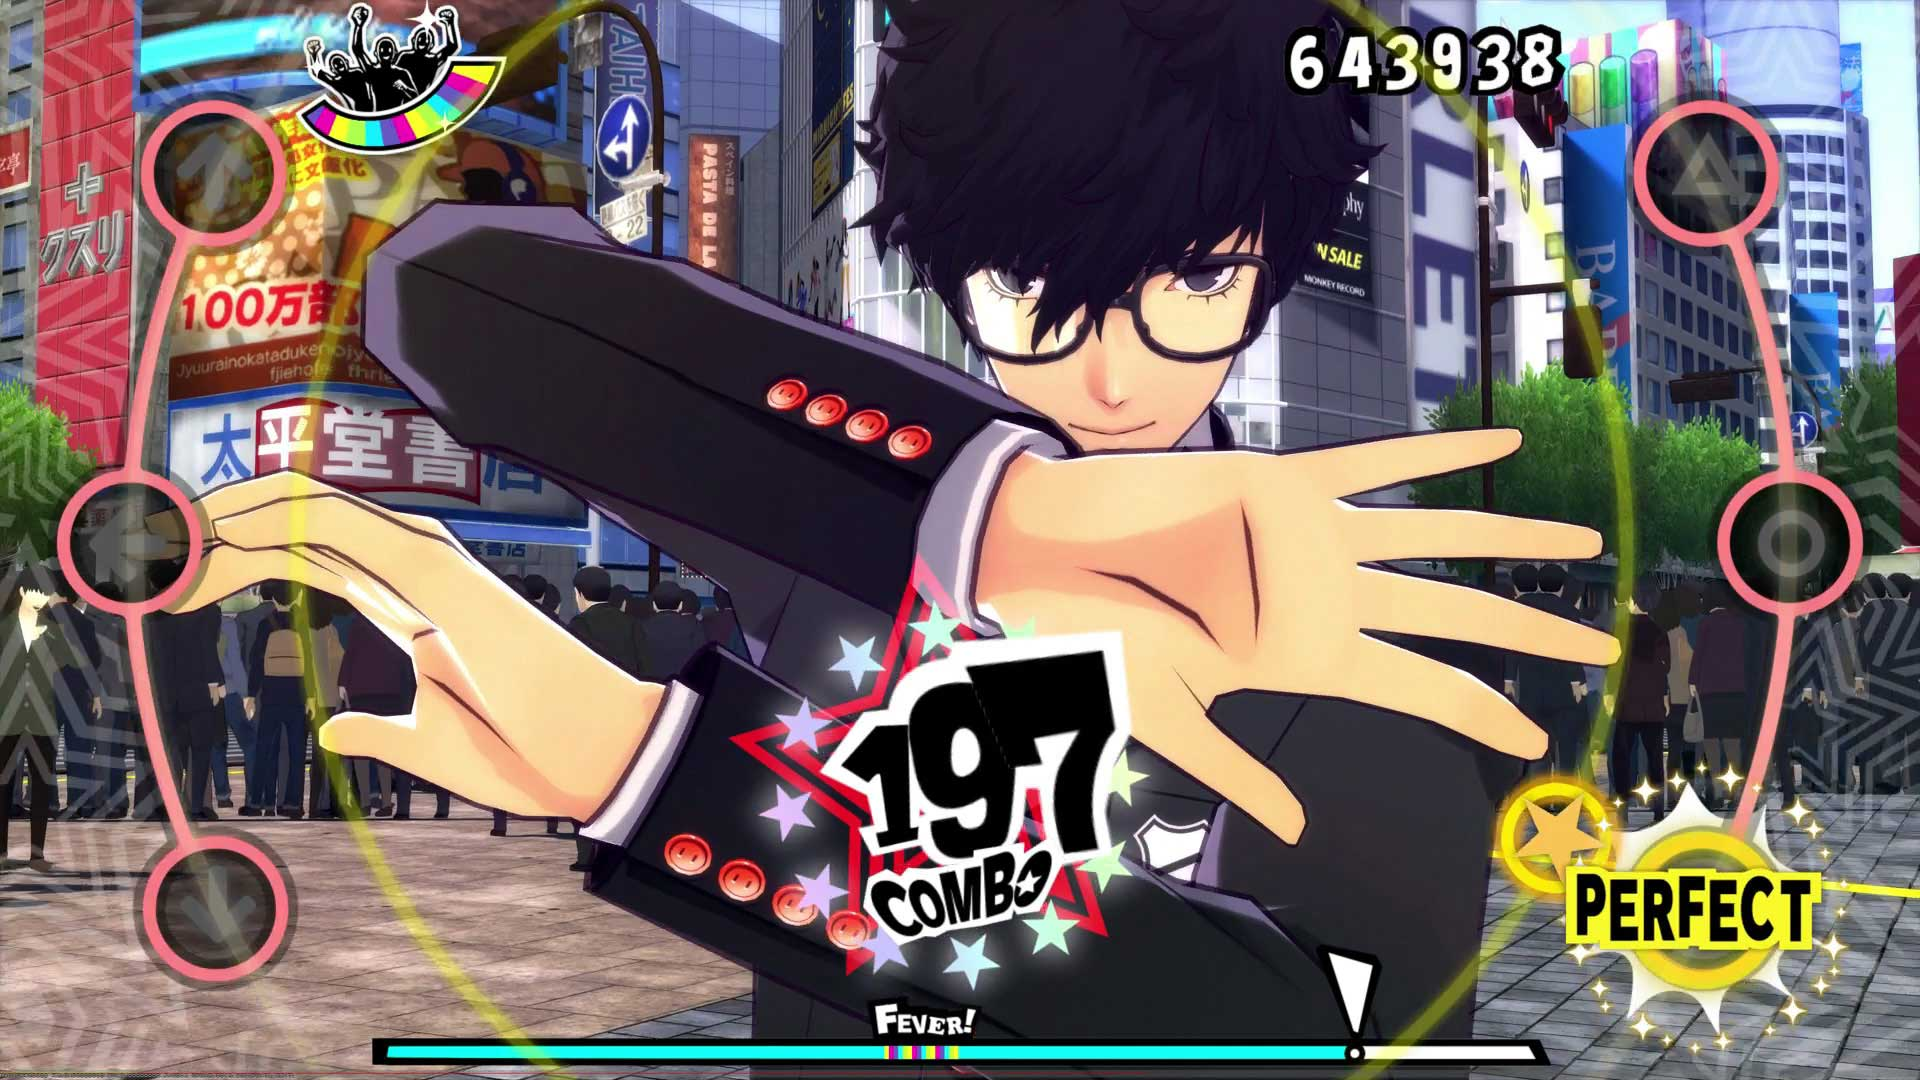 Review_Persona3Dancing_Persona5Dancing01